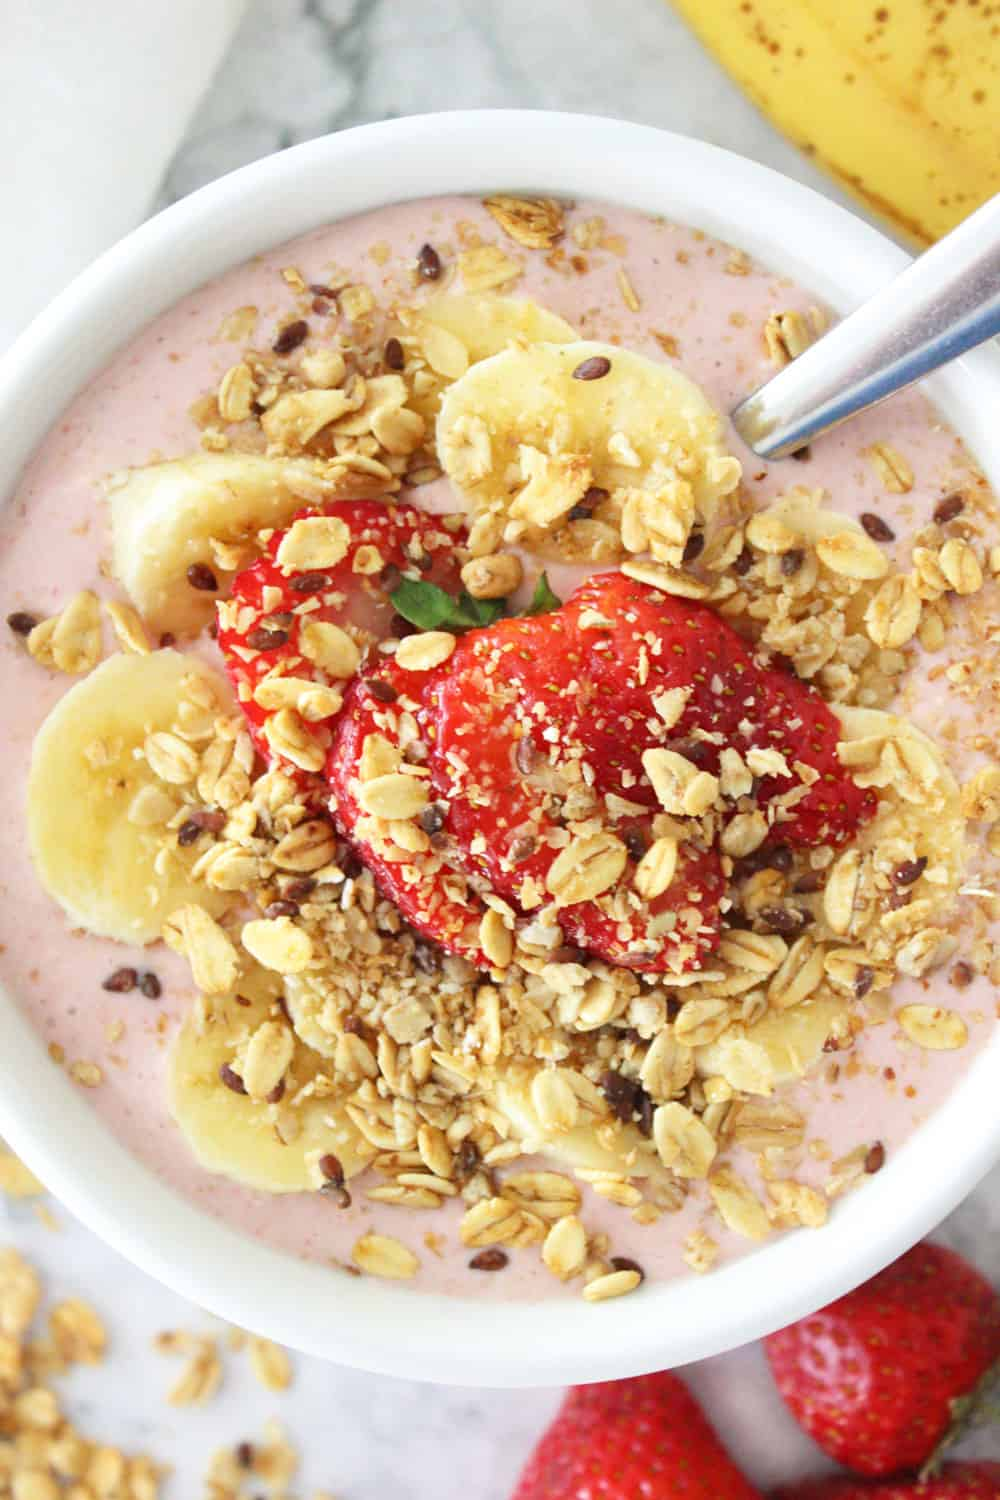 strawberry smoothie bowl topped with granola and fresh fruit with a spoon ready to eat.